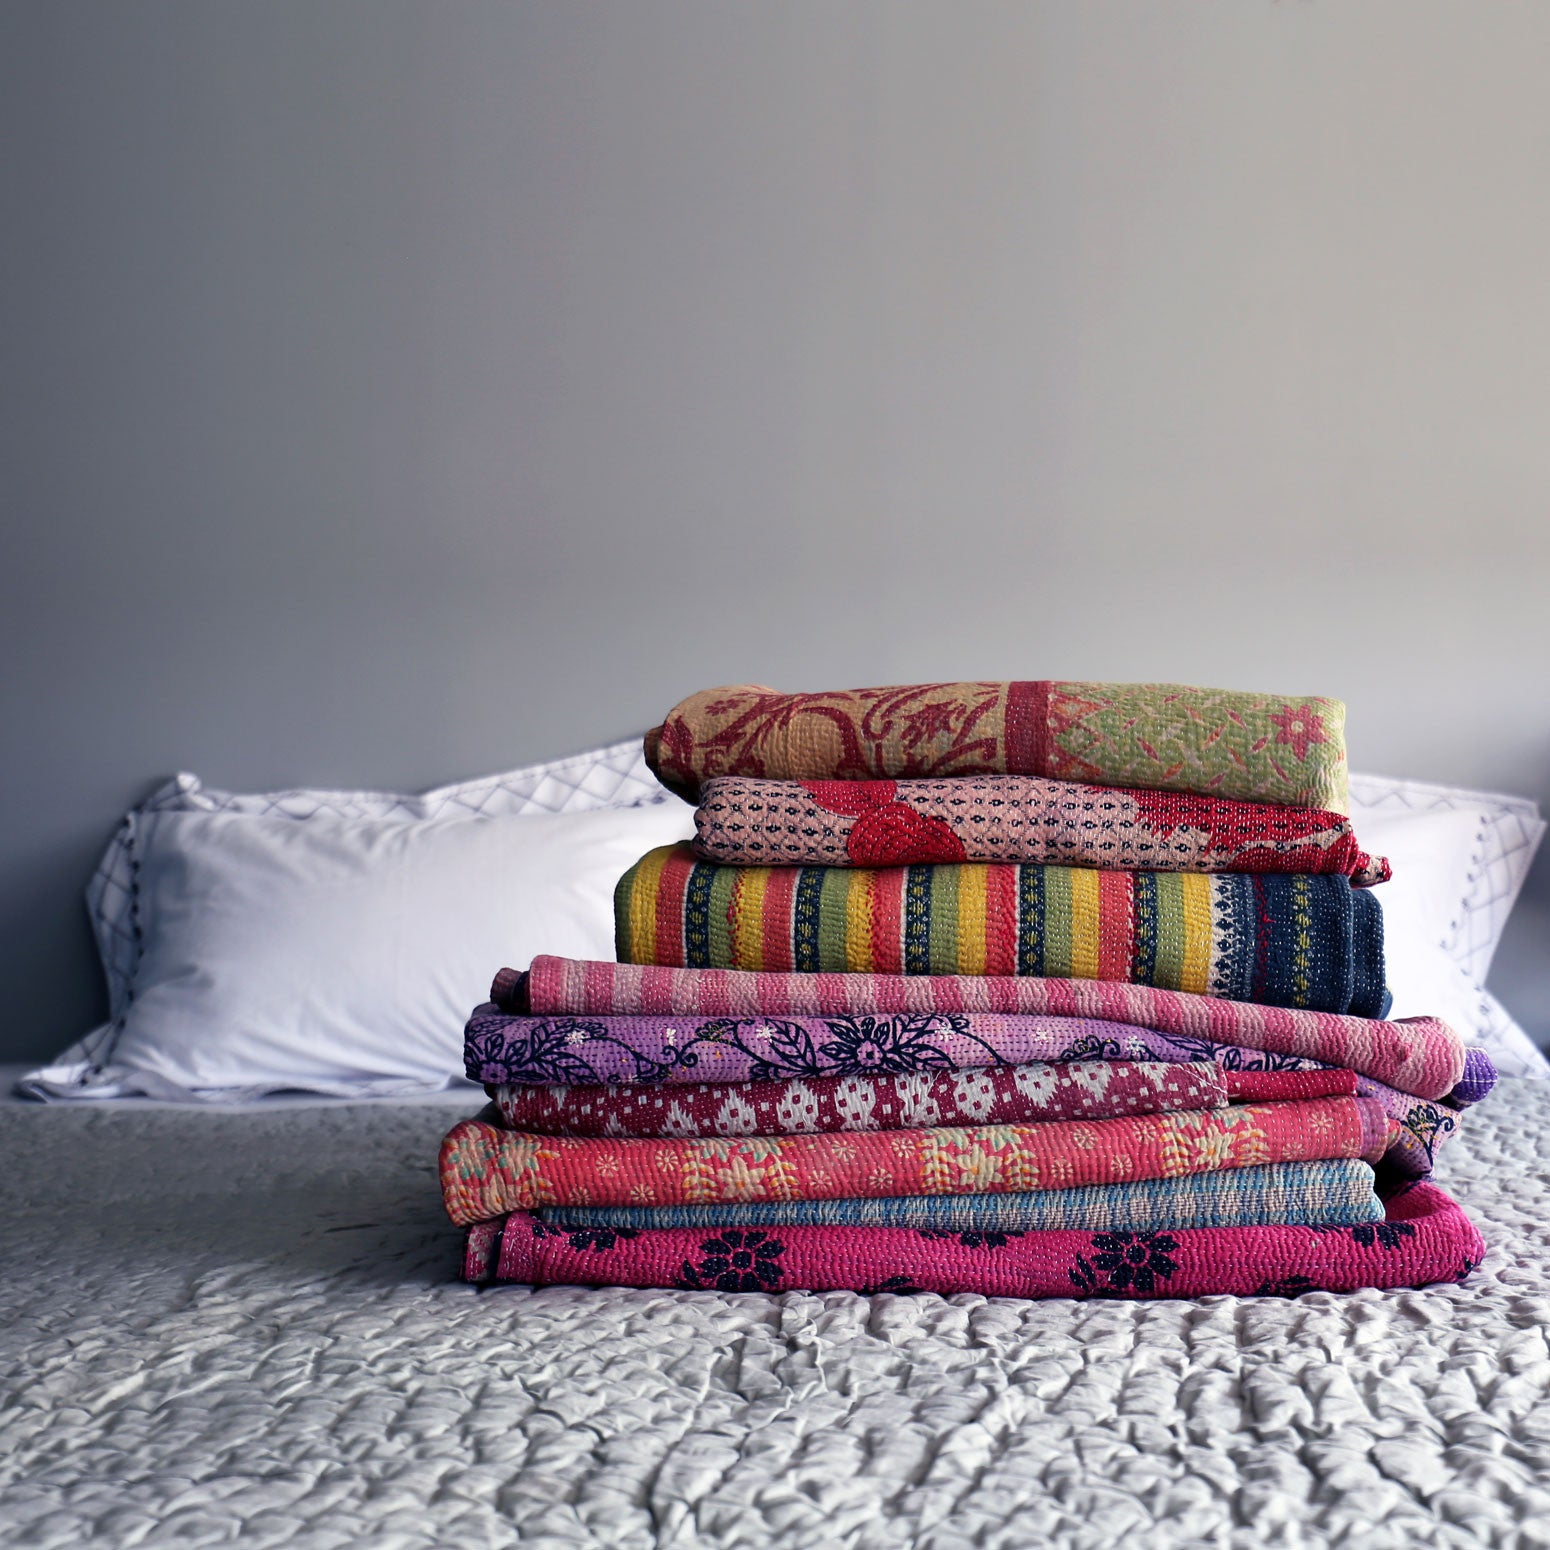 Purple & yellow striped kantha quilt